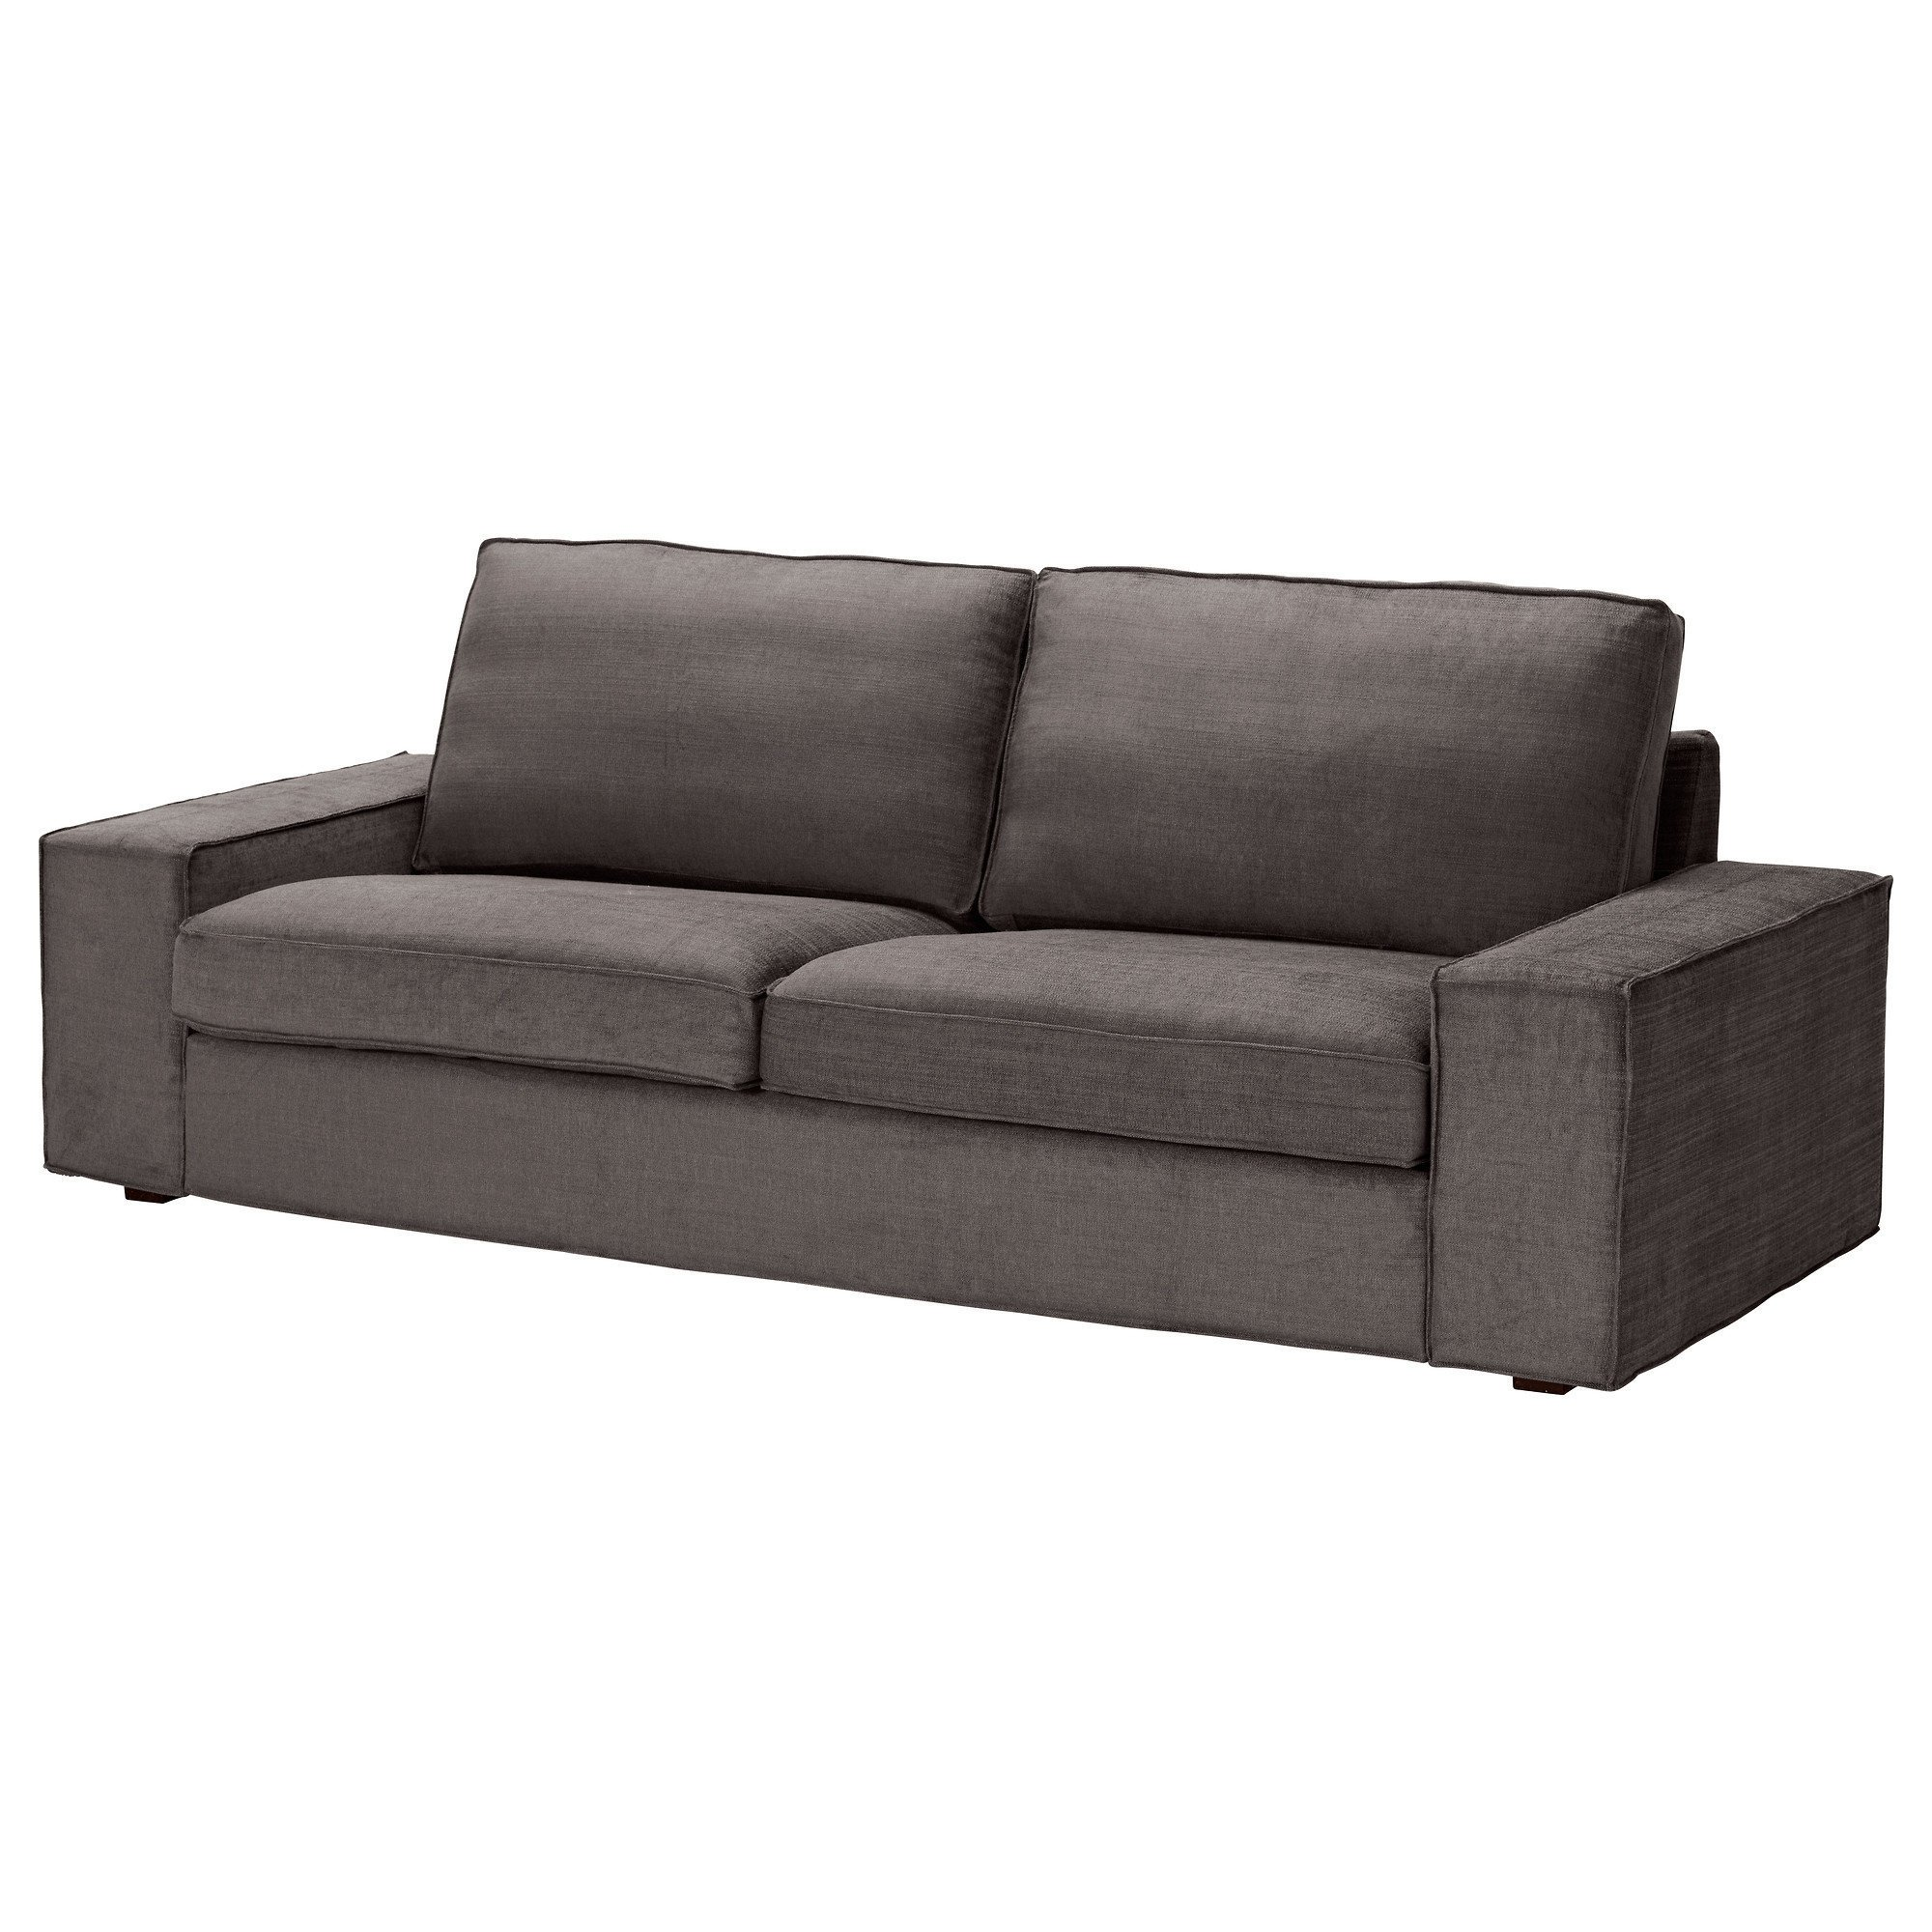 Kivik sofa tullinge gray brown ikea from ikea for Ikea gray sofa